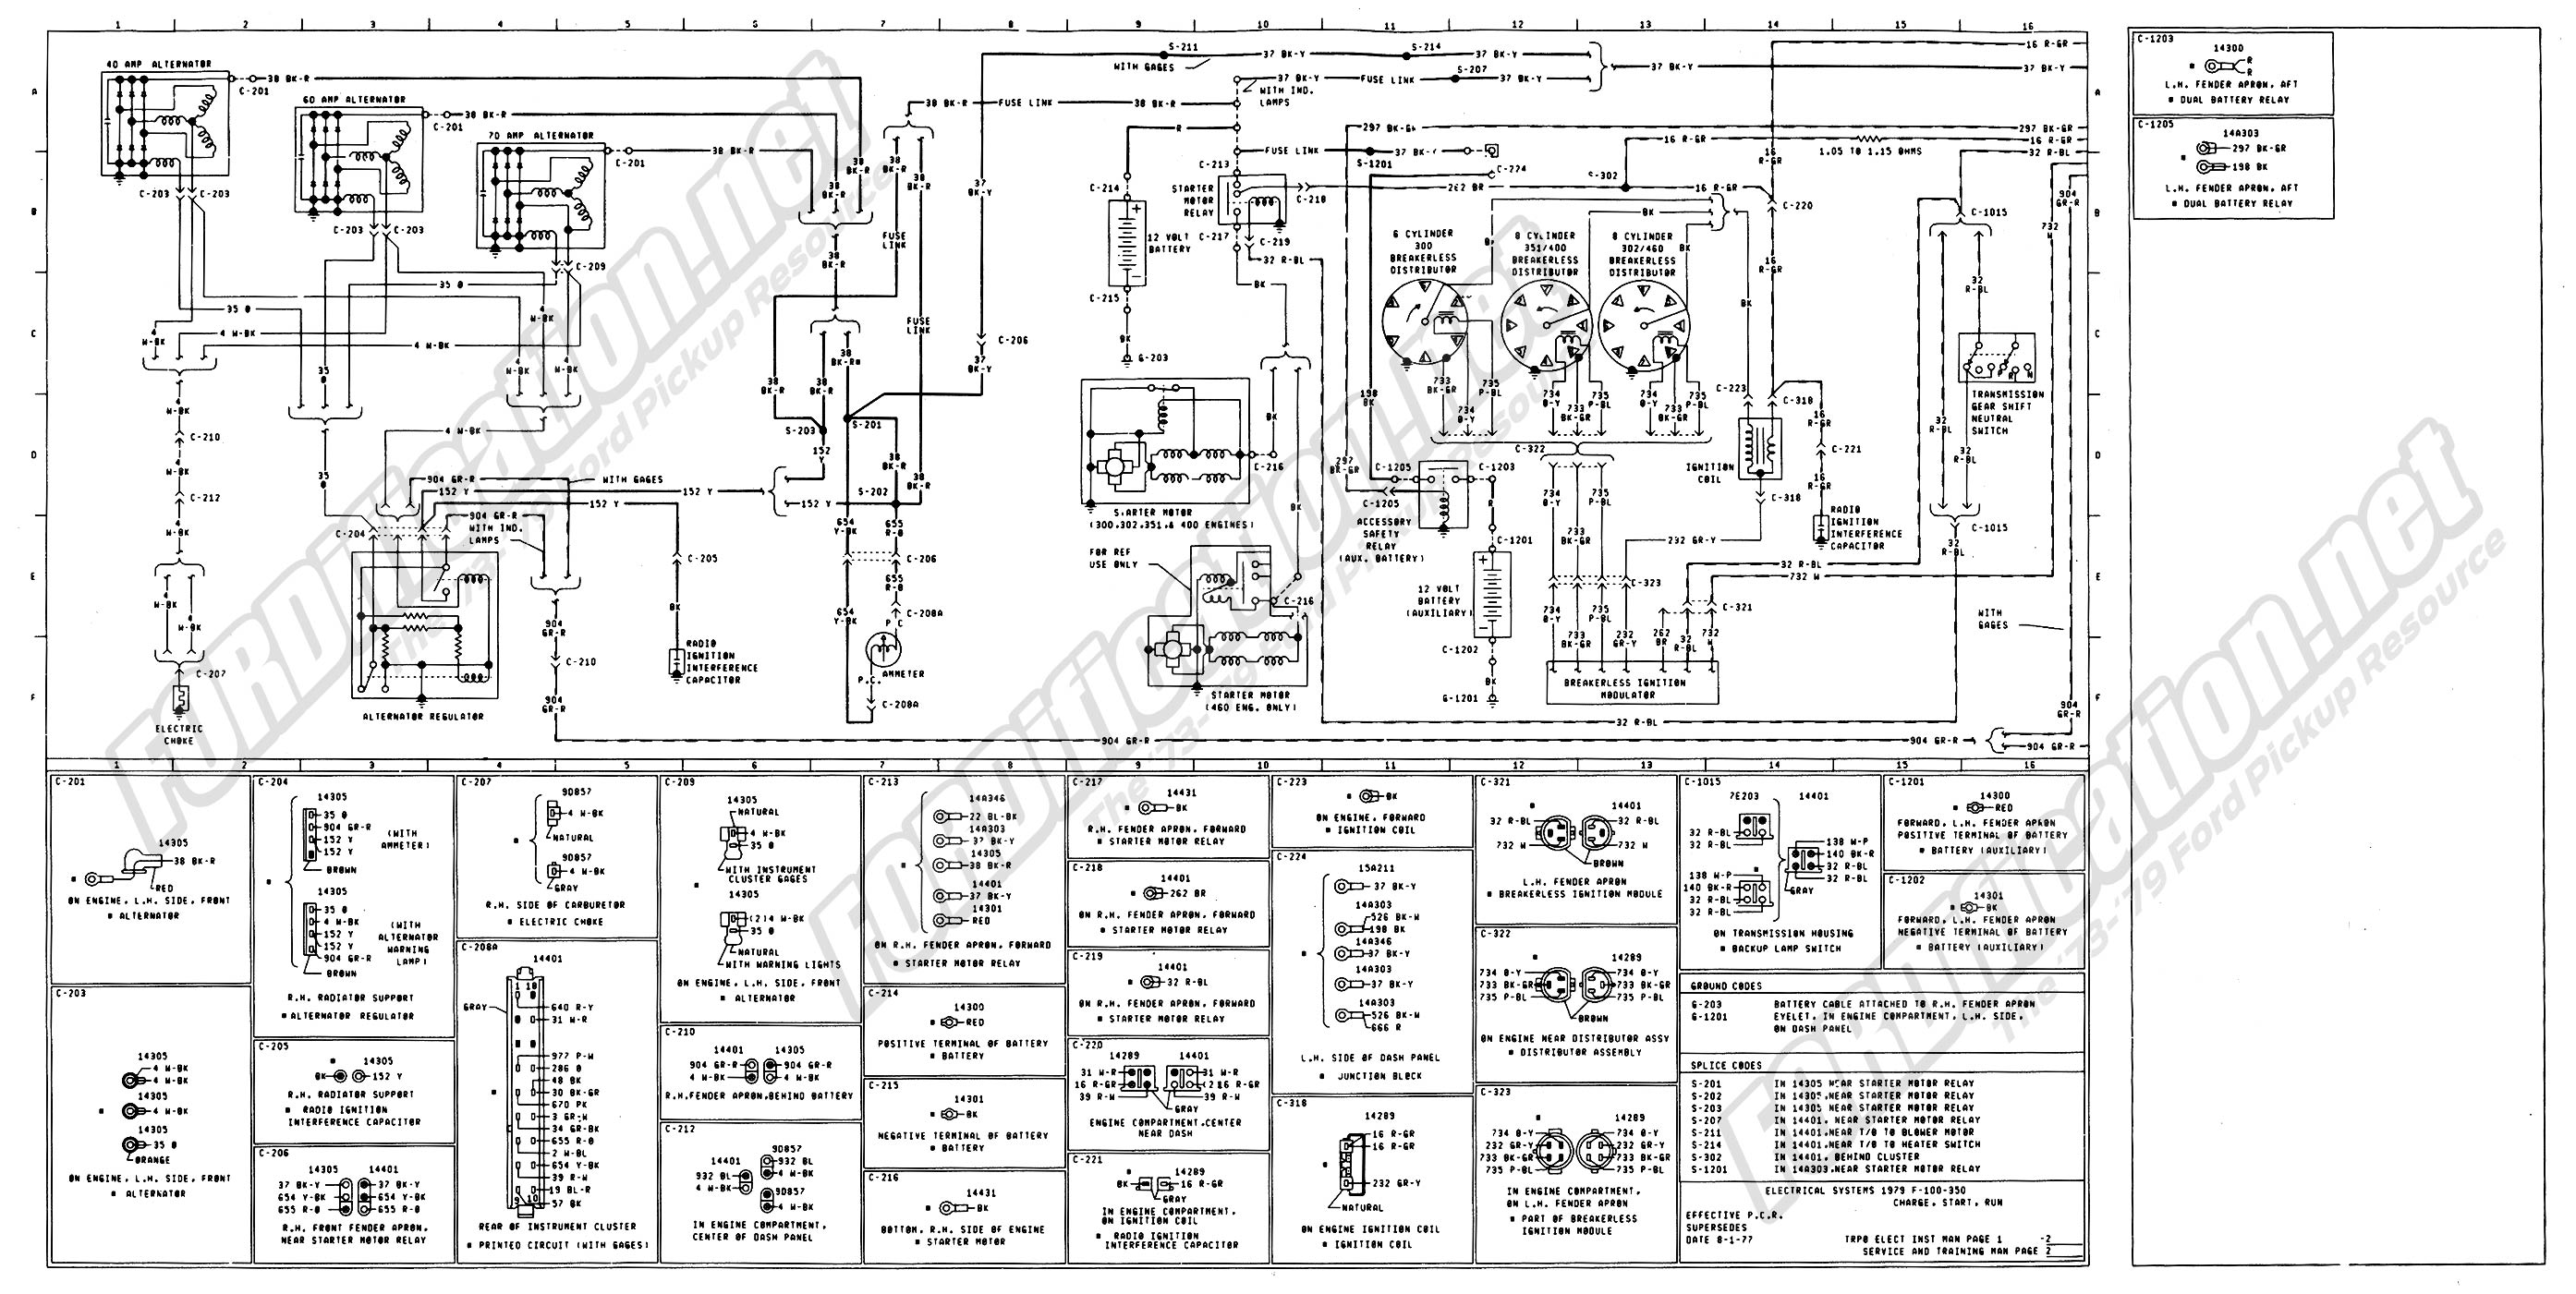 wiring_79master_2of9 1973 1979 ford truck wiring diagrams & schematics fordification net 1999 F150 Radio Wiring Diagram at crackthecode.co